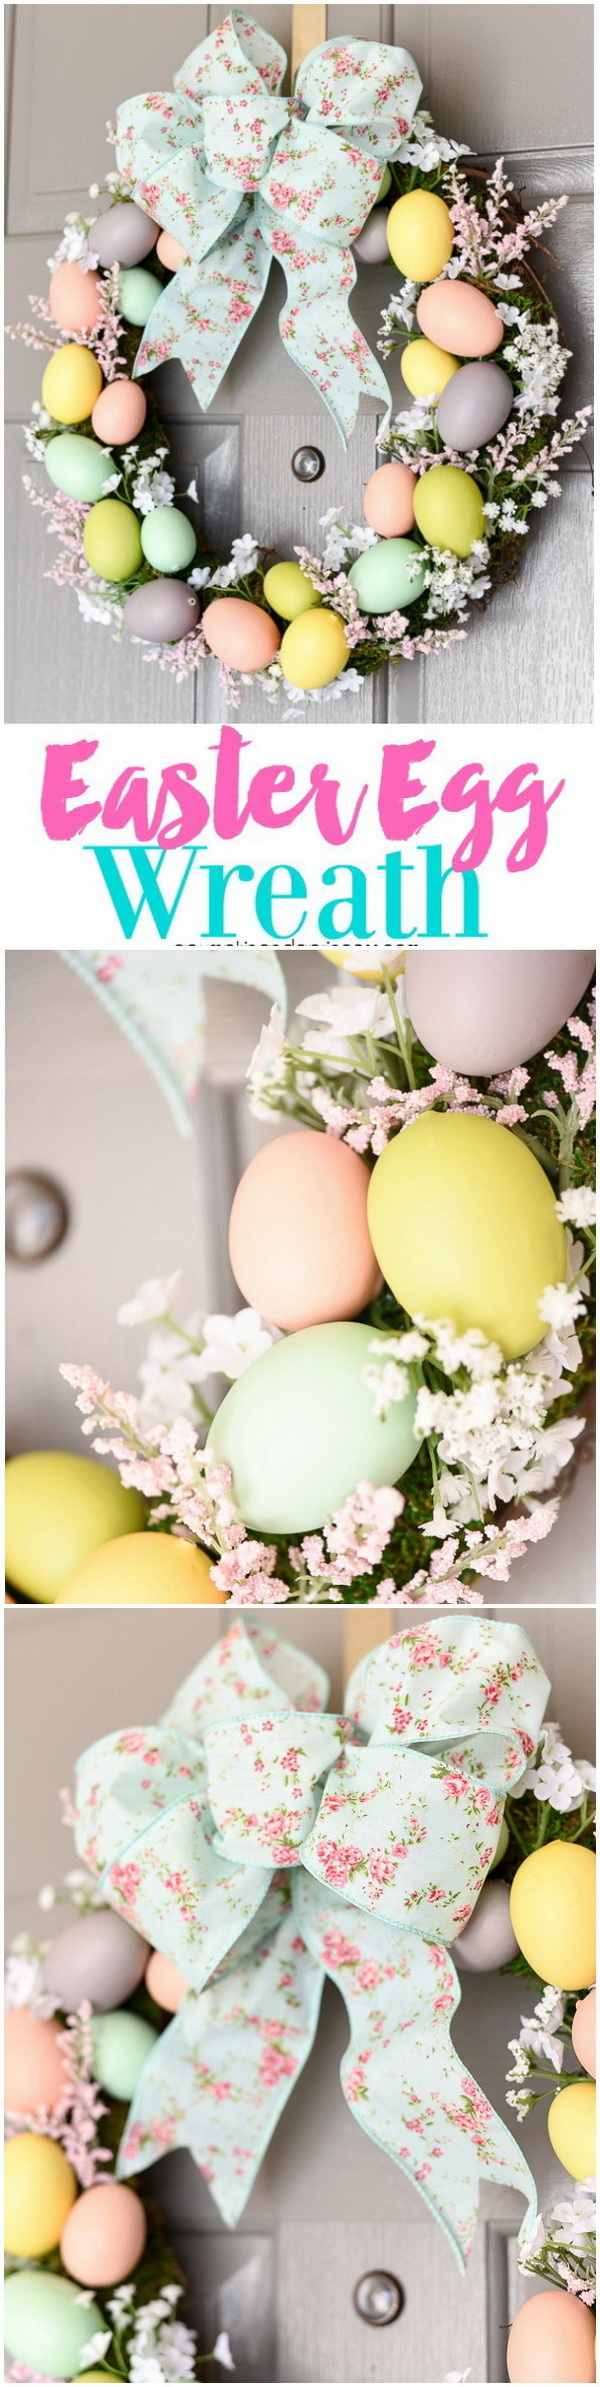 DIY Easter Wreath Ideas: DIY Easter Egg Wreath.